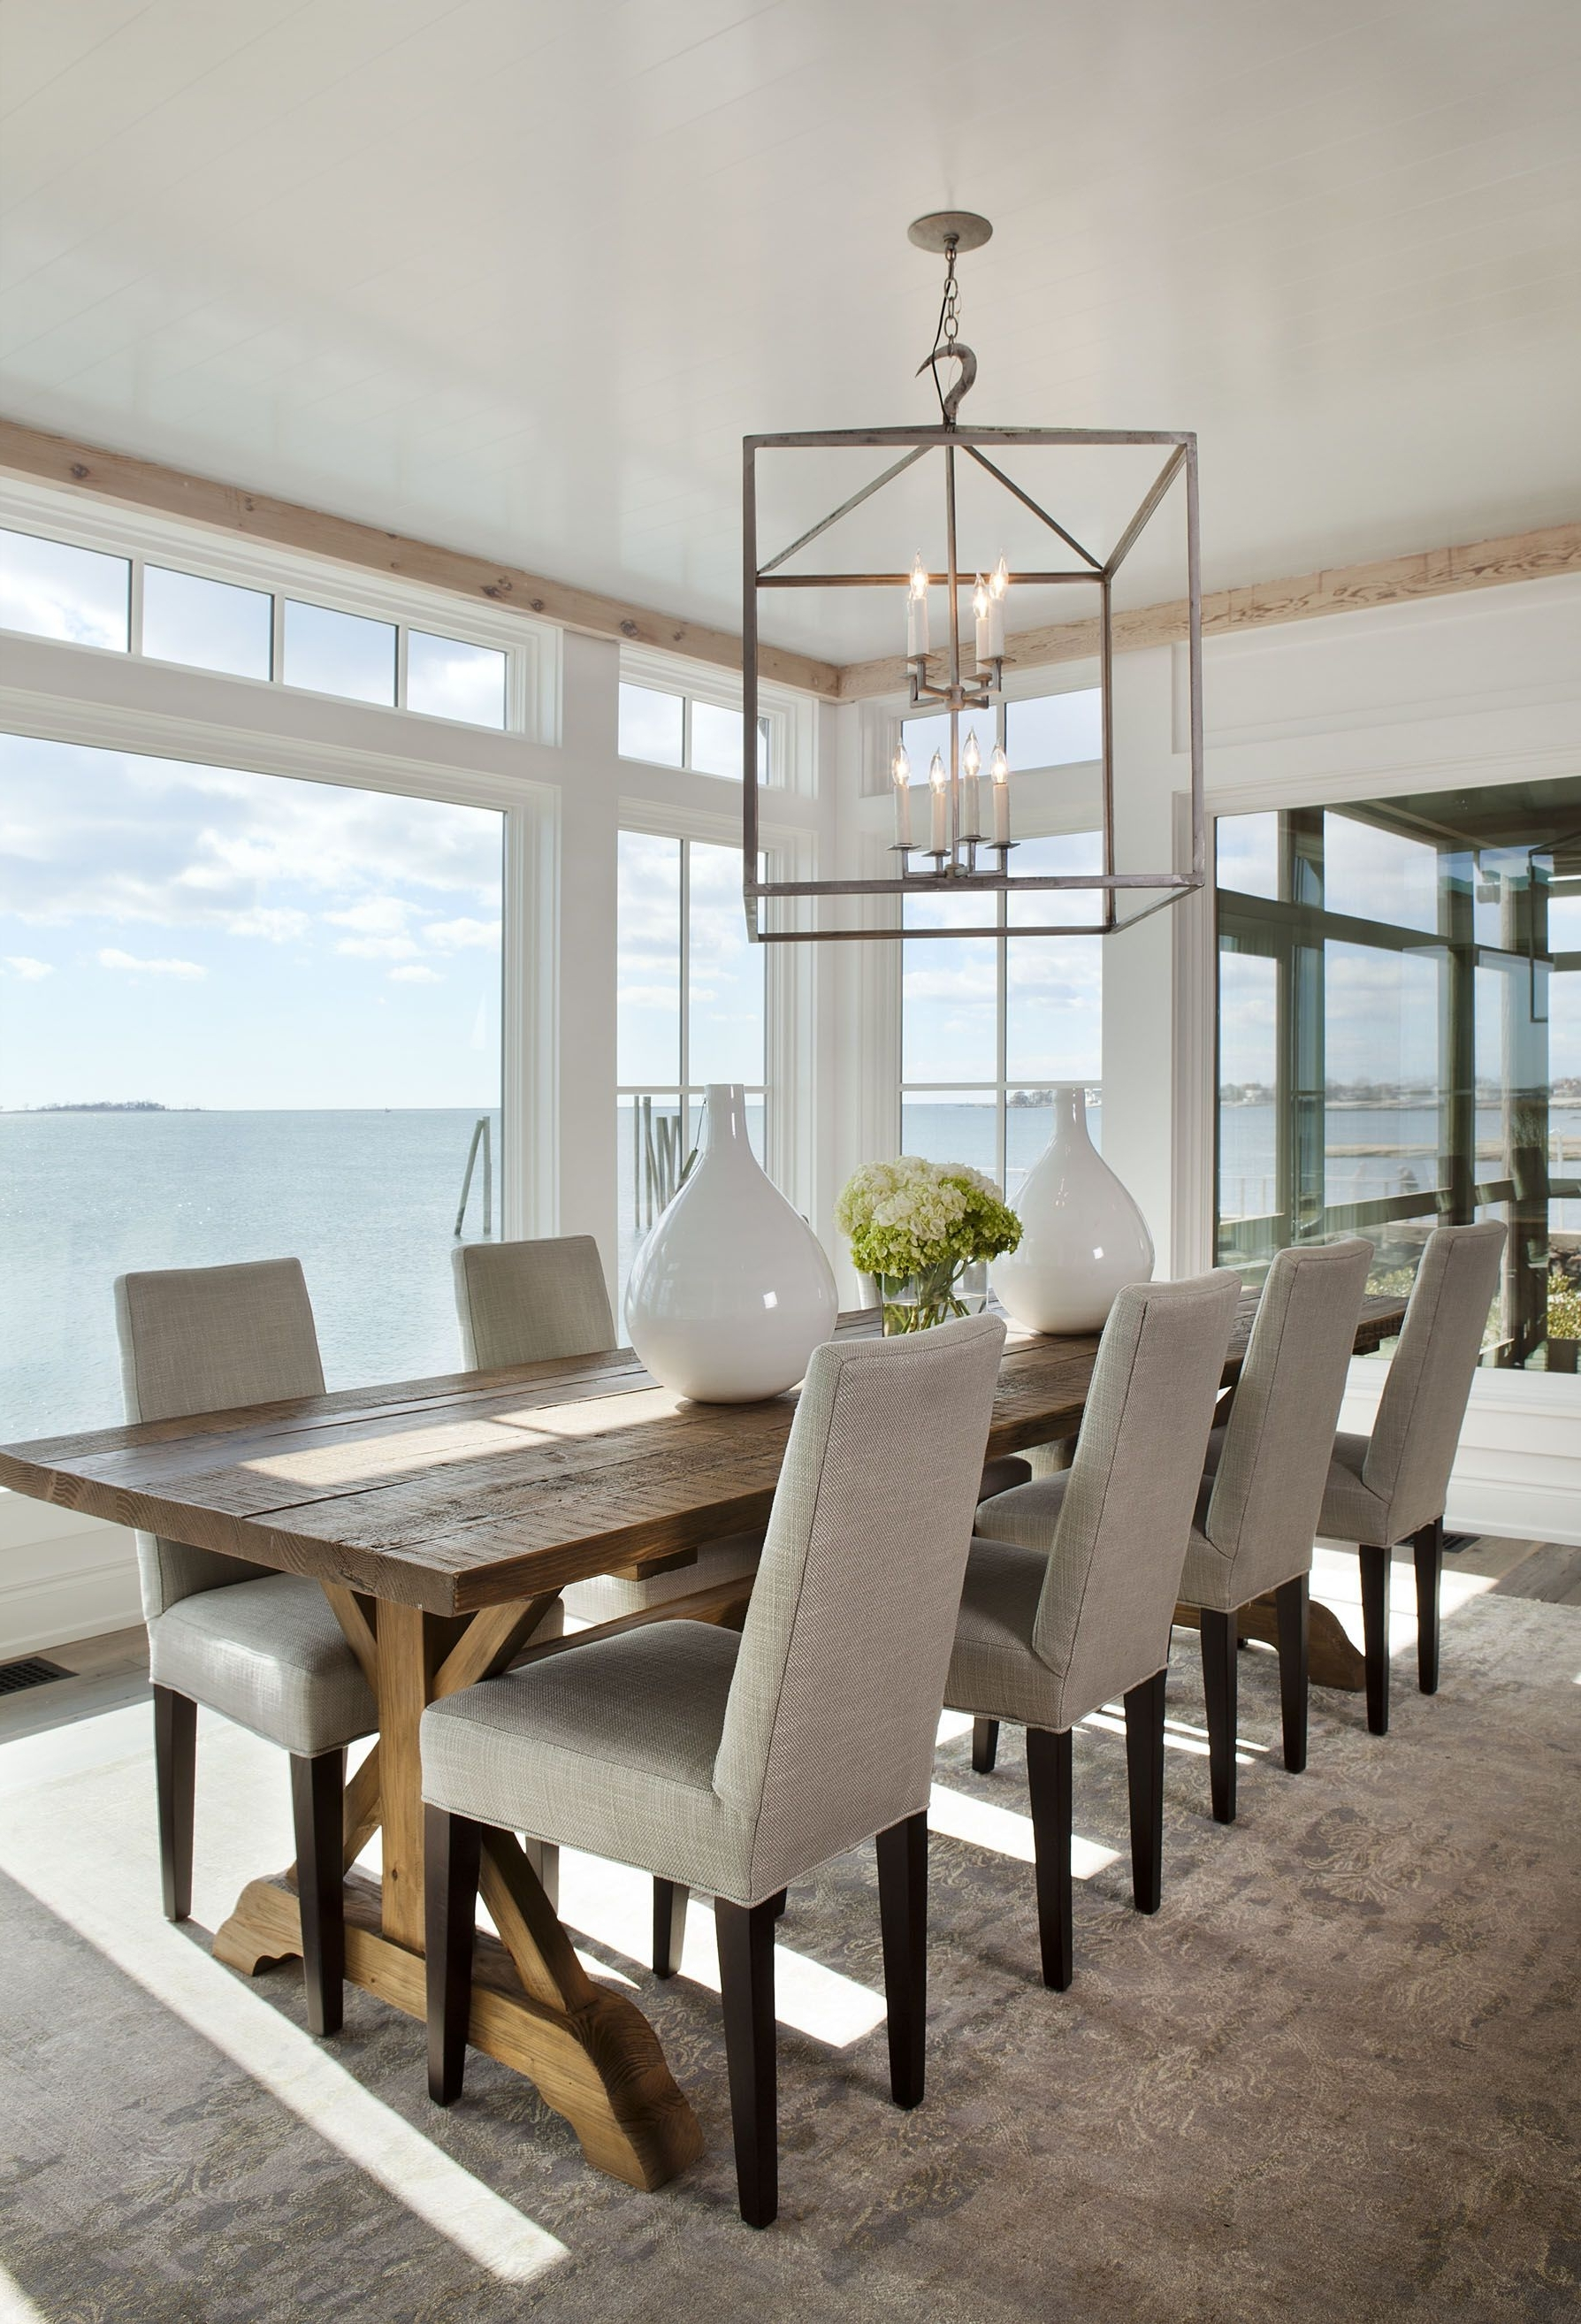 I Like The Large Table, The Chairs And The Overall Modern, Clean And pertaining to Favorite Long Dining Tables